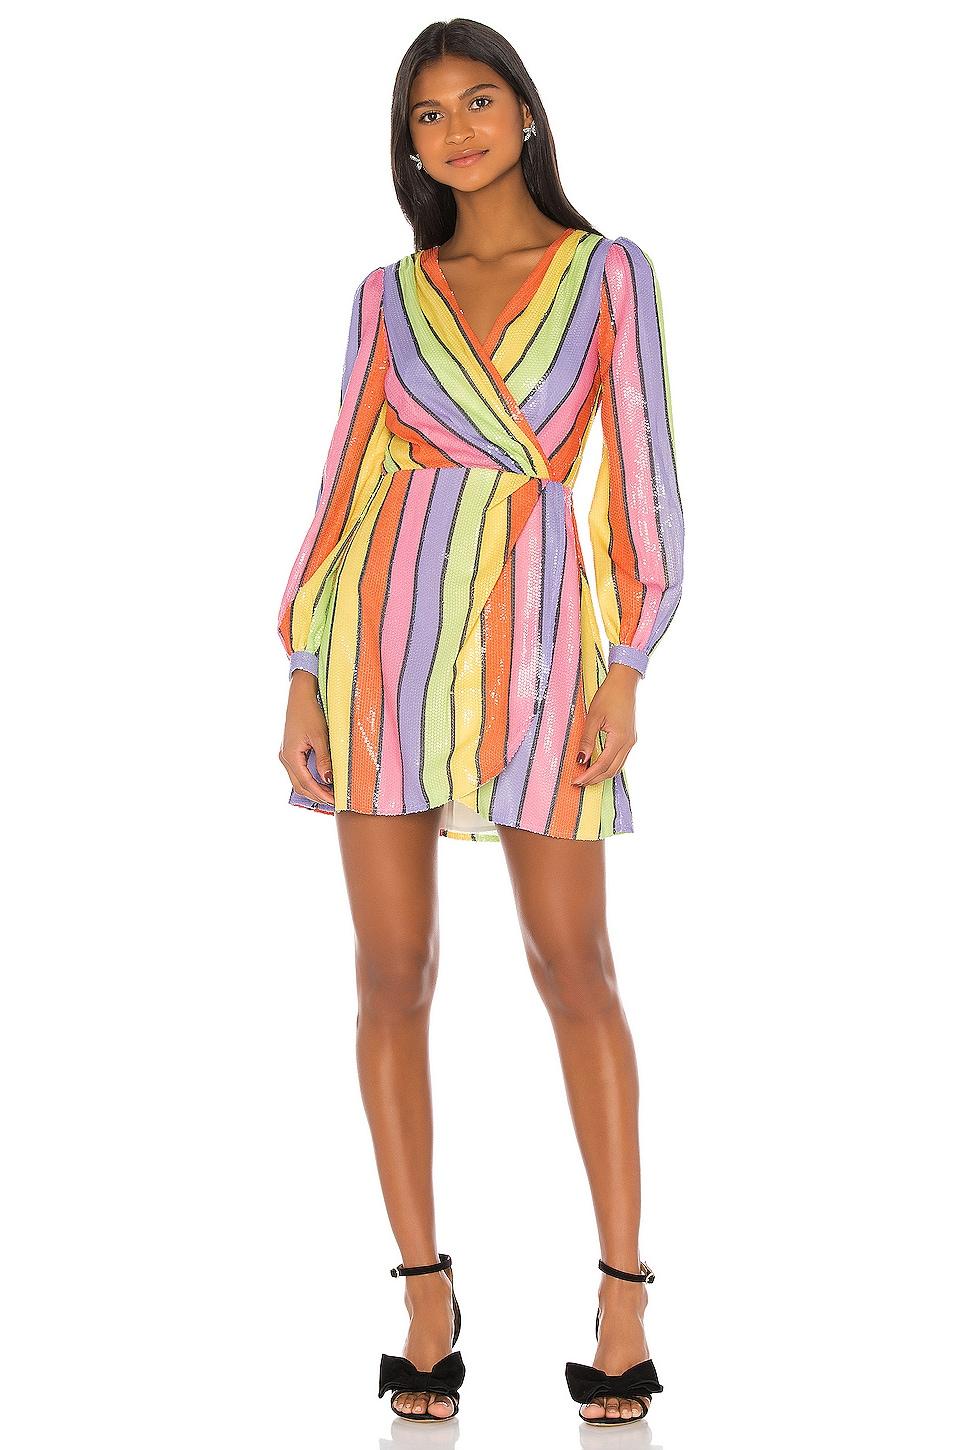 Olivia Rubin Meg Dress in Resort Stripe